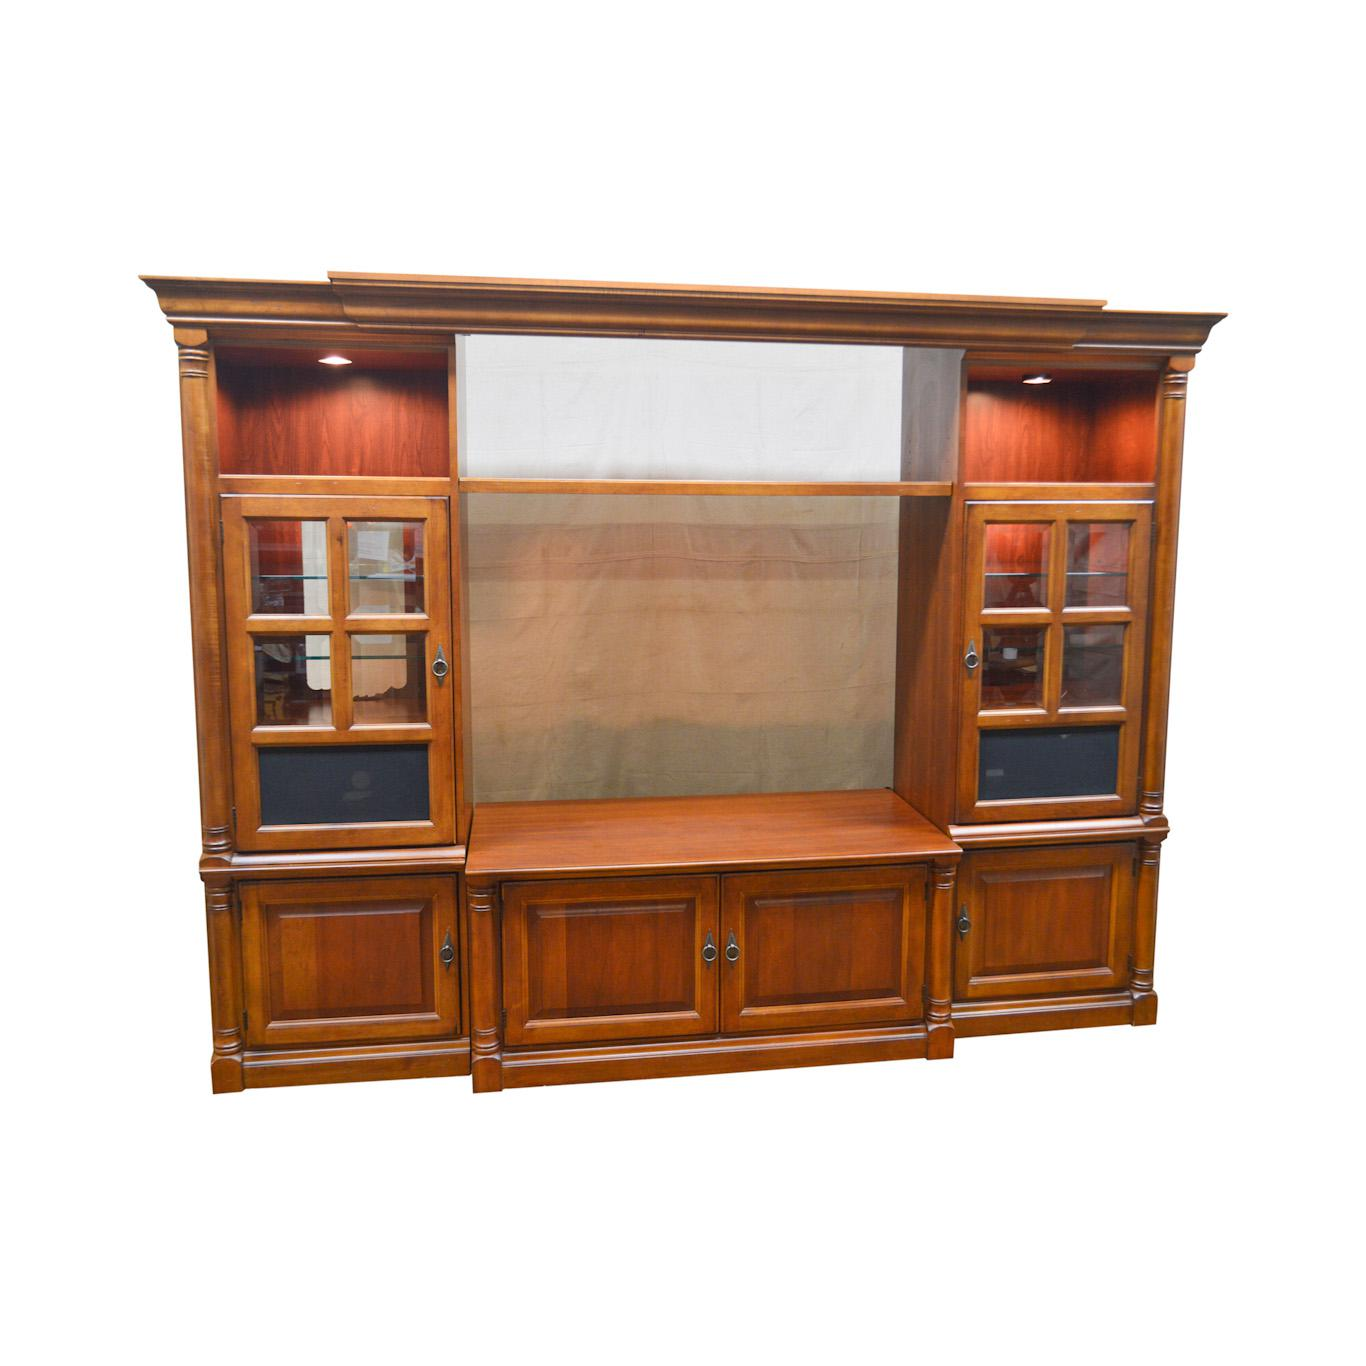 Hooker Furniture Large Cherry Entertainment Tv Unit W/ Curio Display  Cabinets For Sale   Image